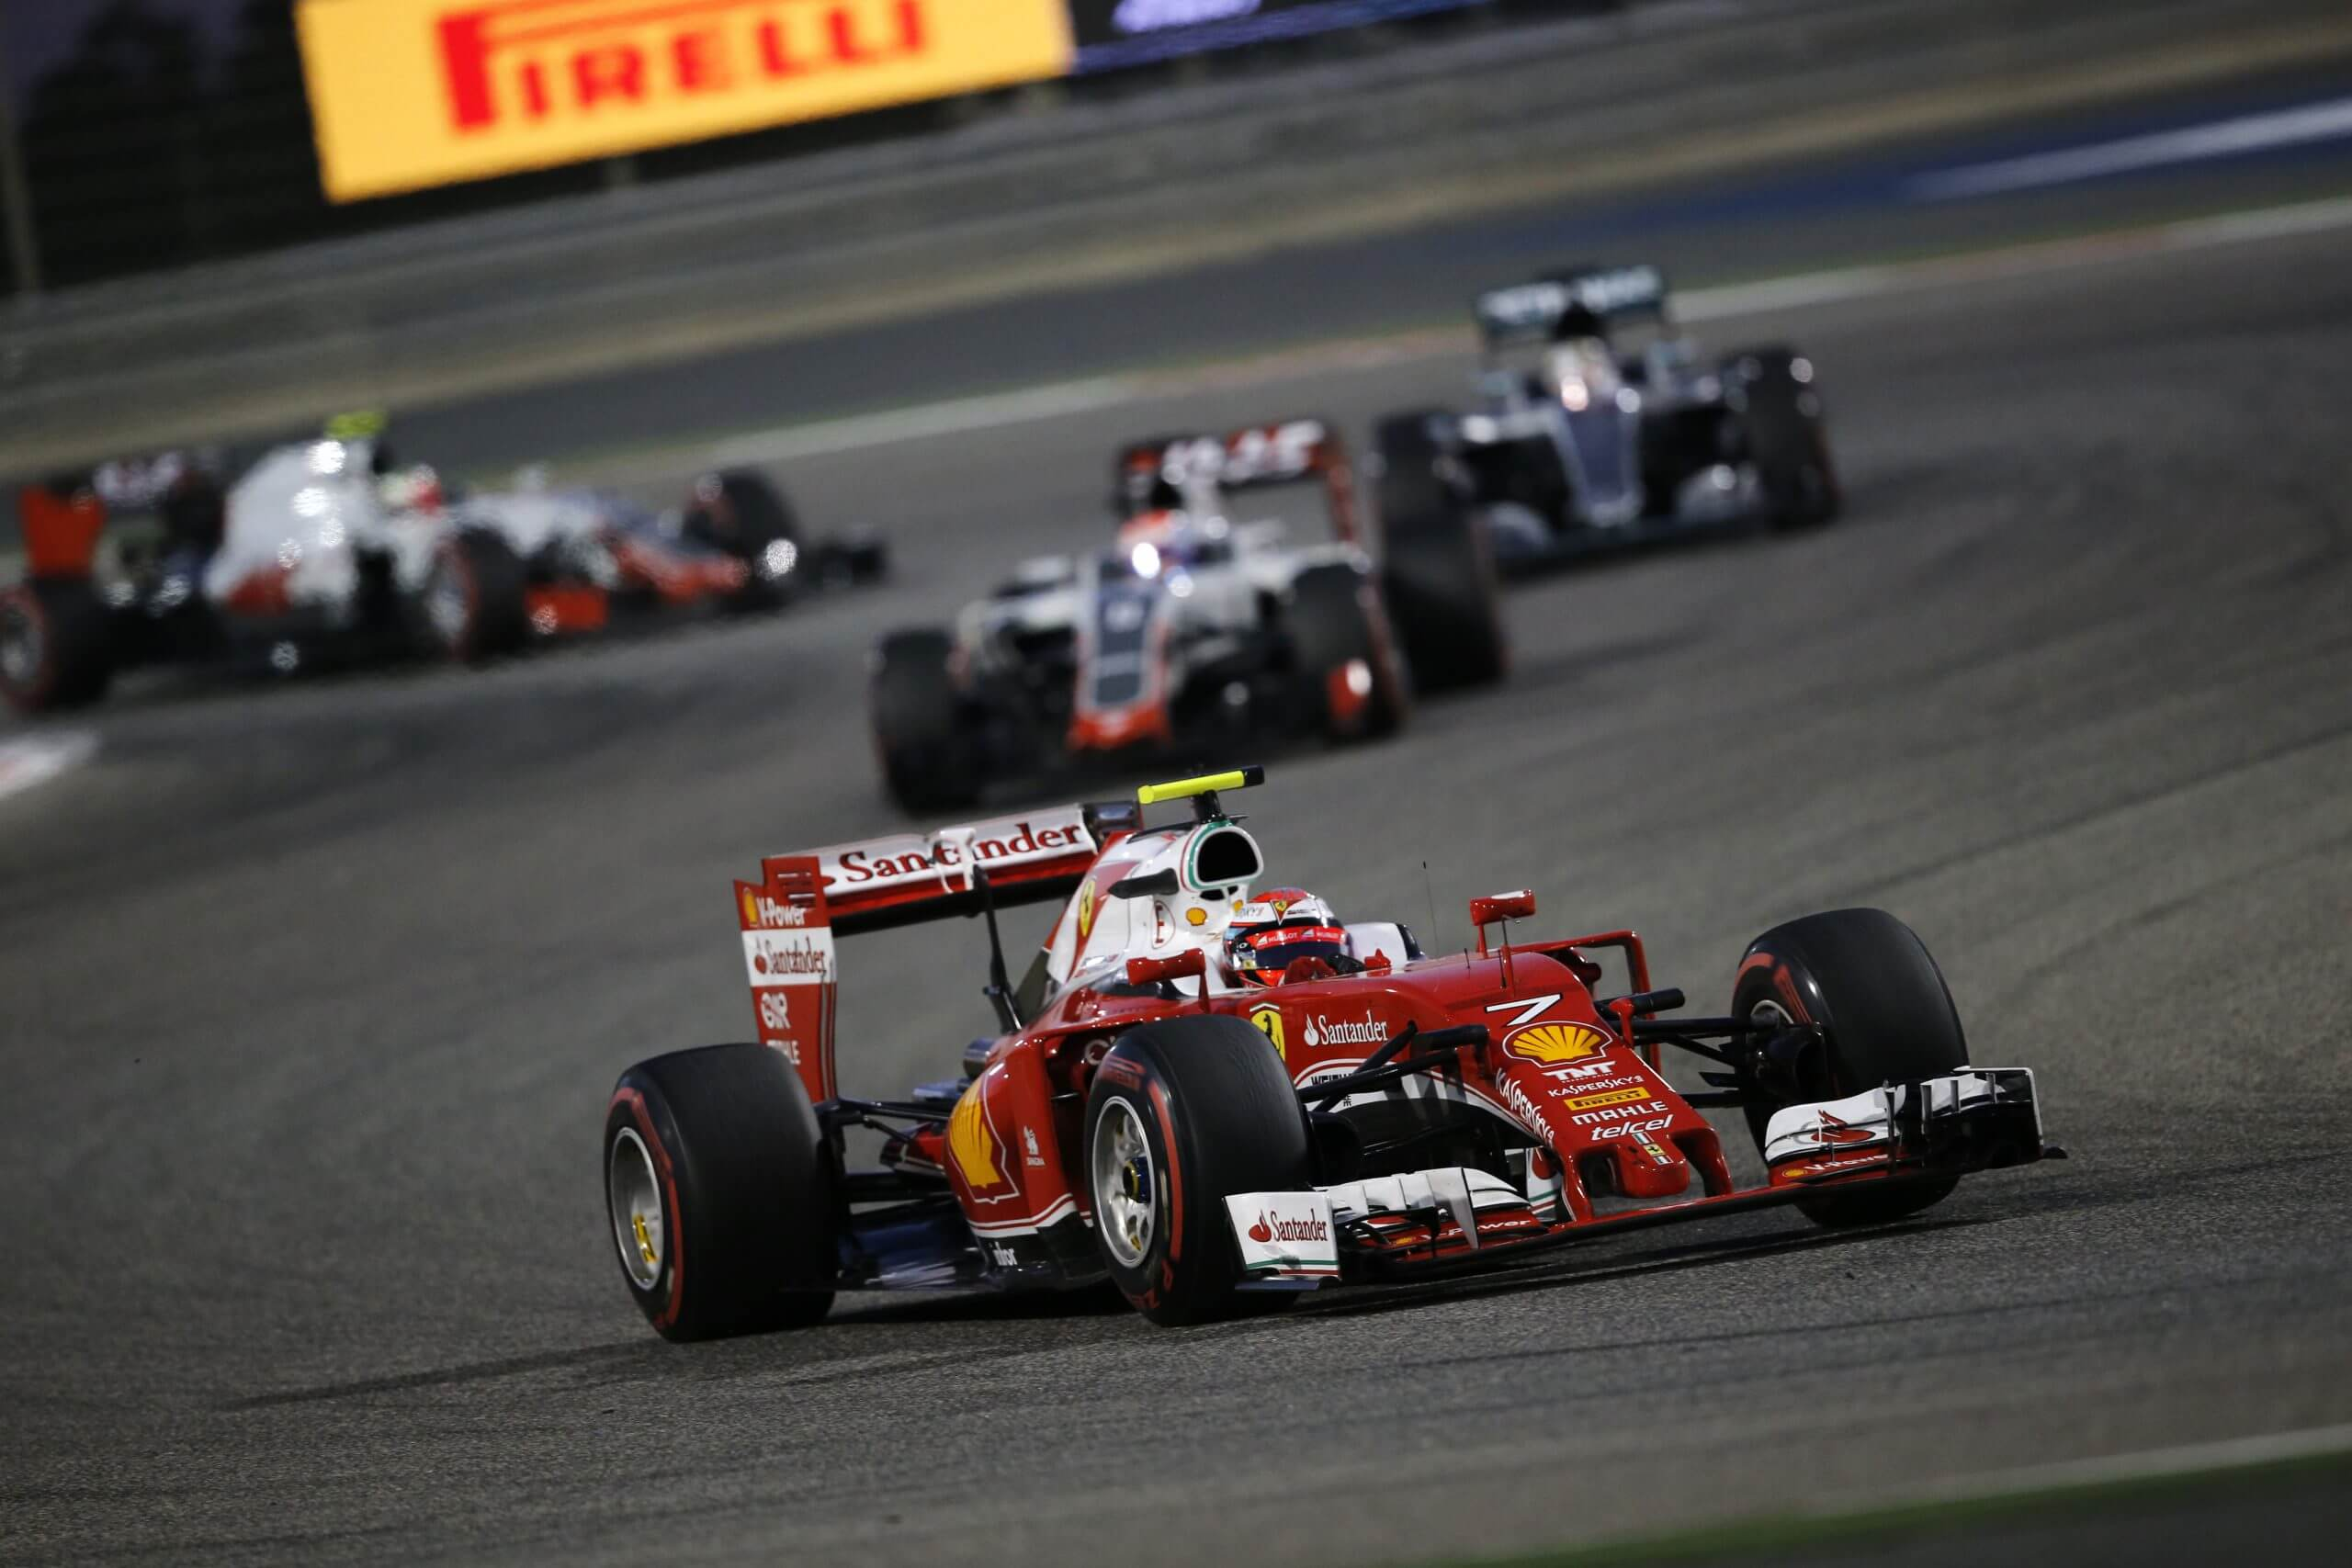 Culture and sport share pole position